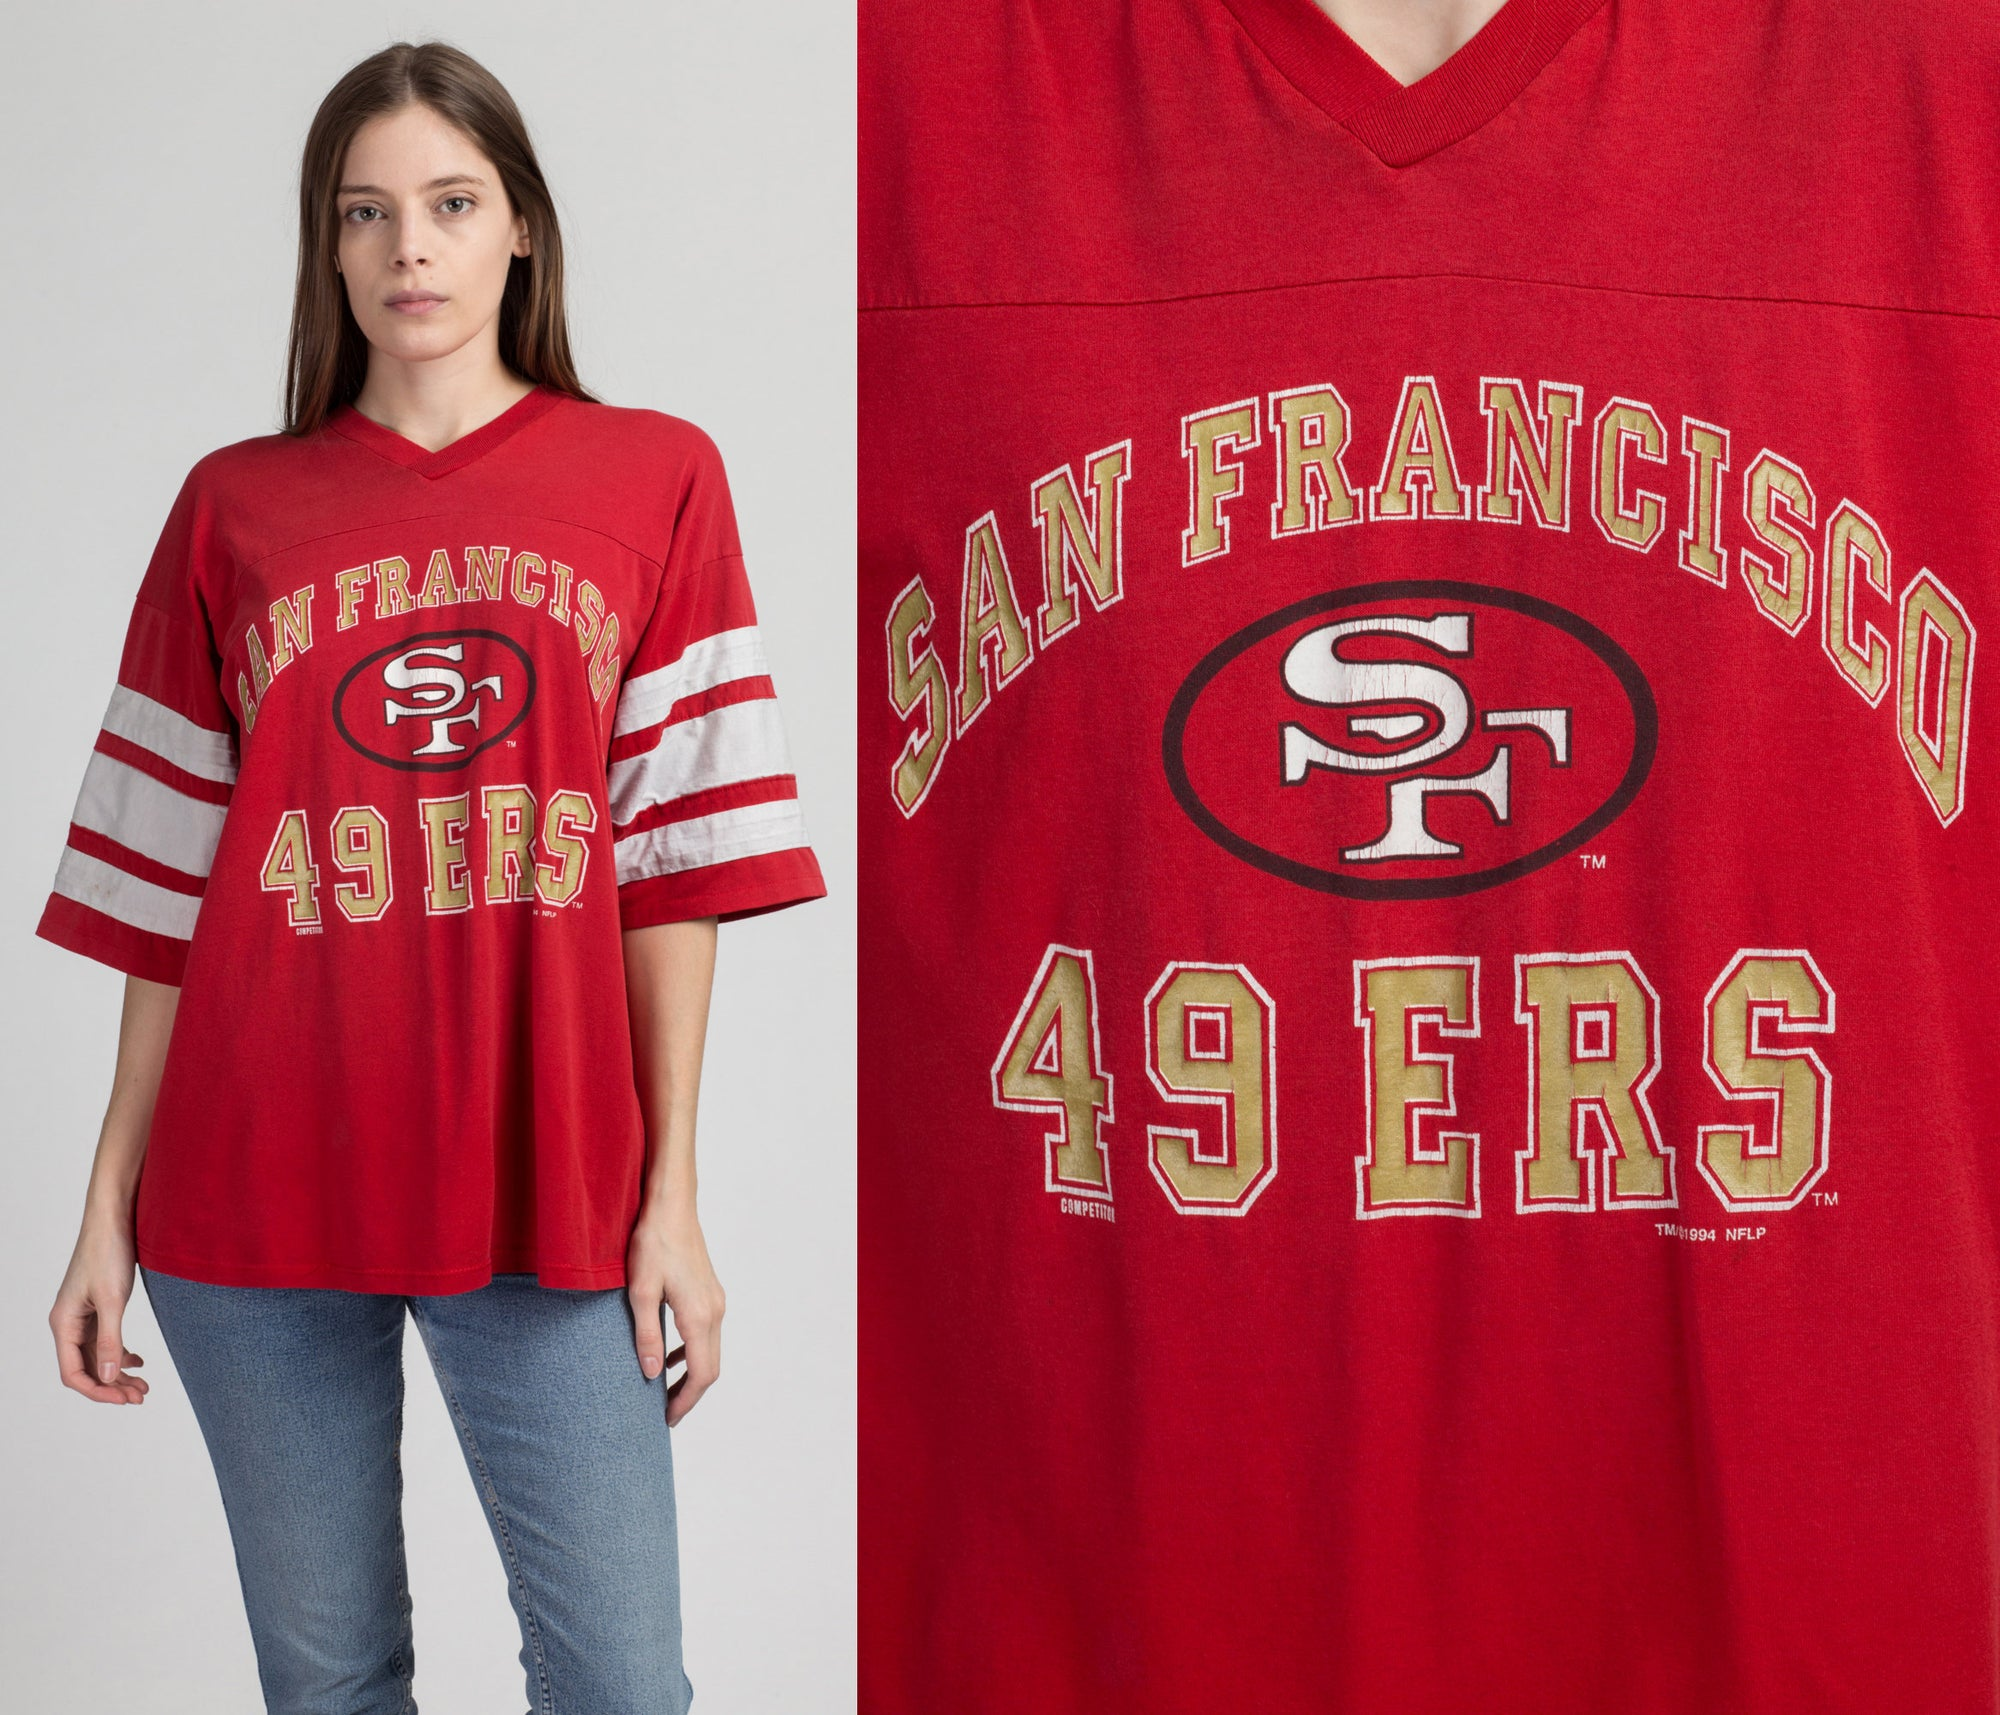 90s San Francisco 49ers T Shirt - Men's XL | Vintage NFL Football Athletic Tee